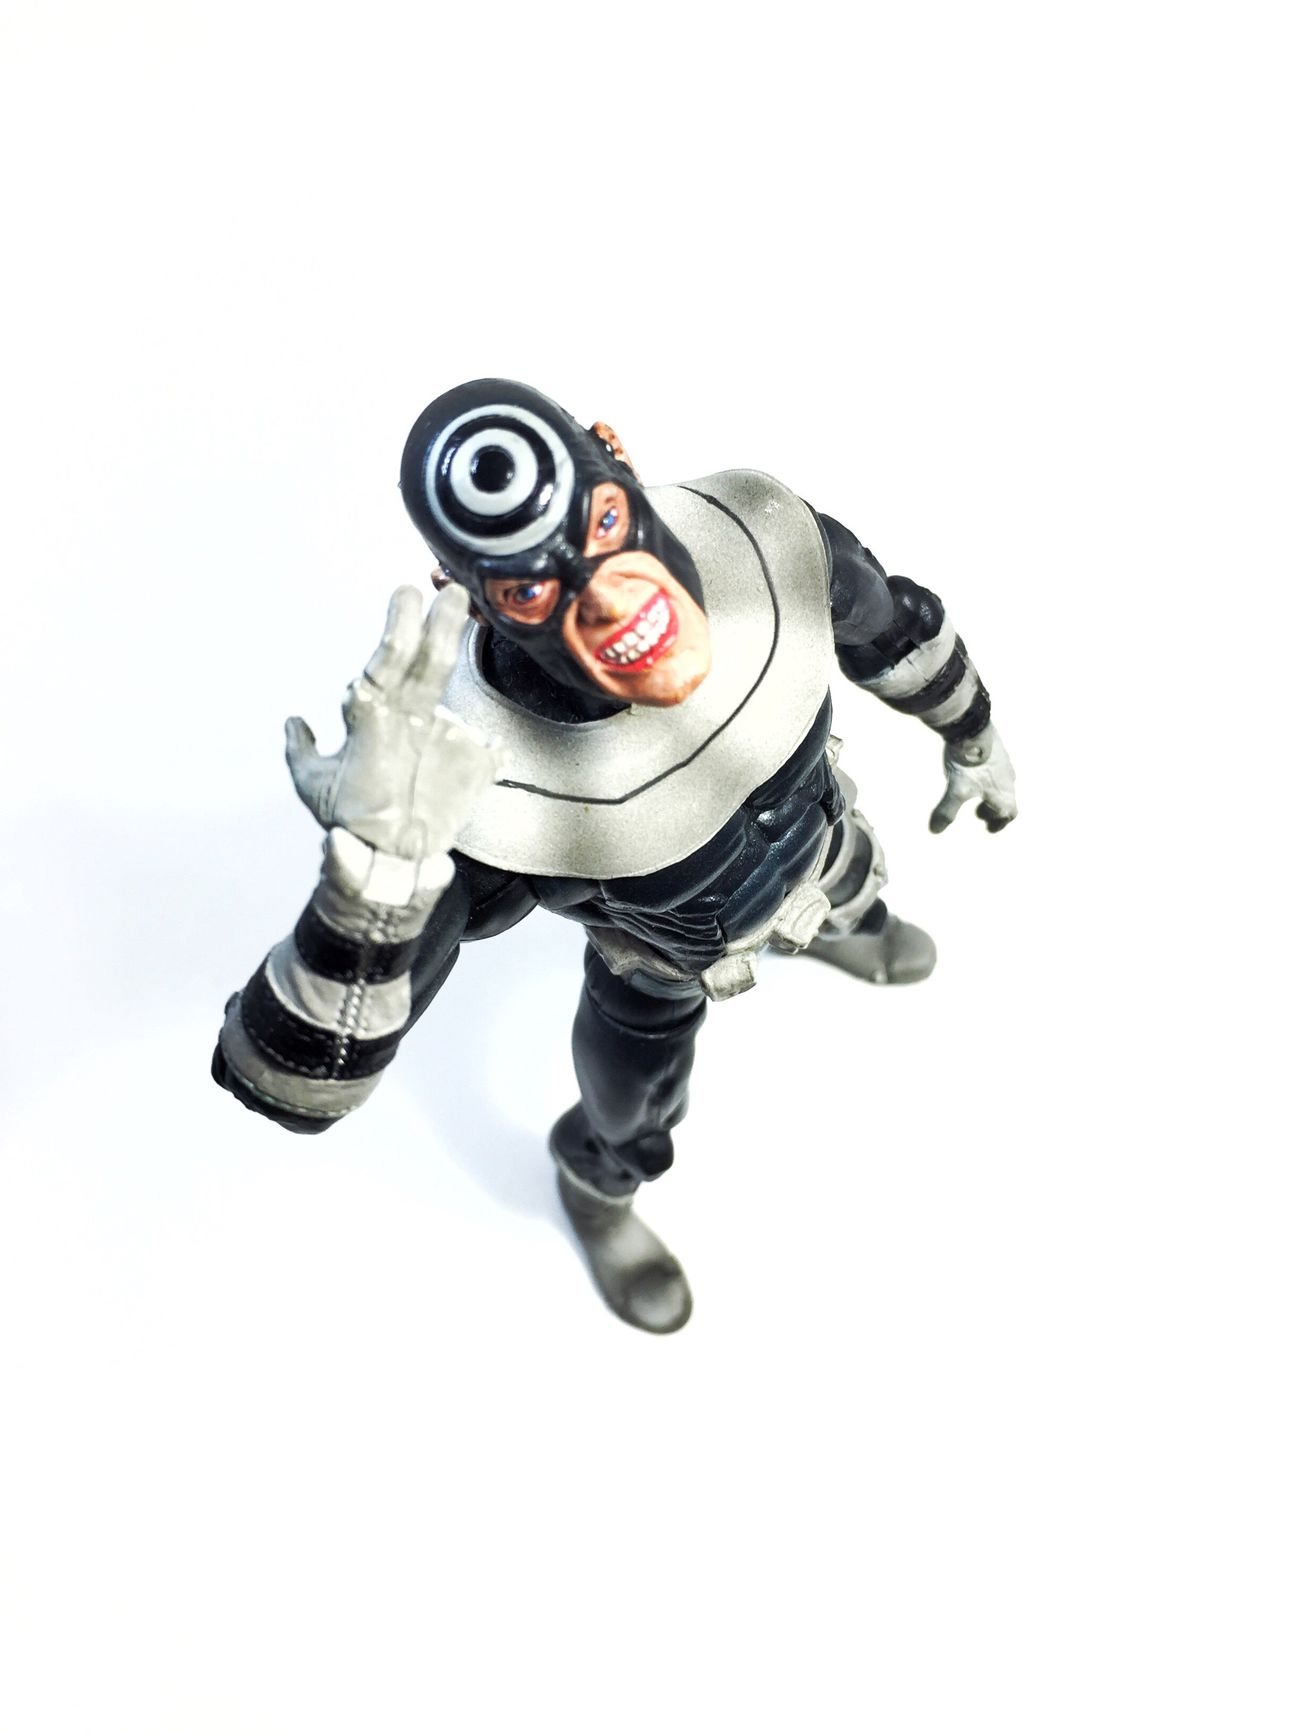 Ata_dreadnoughts Figurephotography Marvellegends Actiontoyart Toybiz Marvel